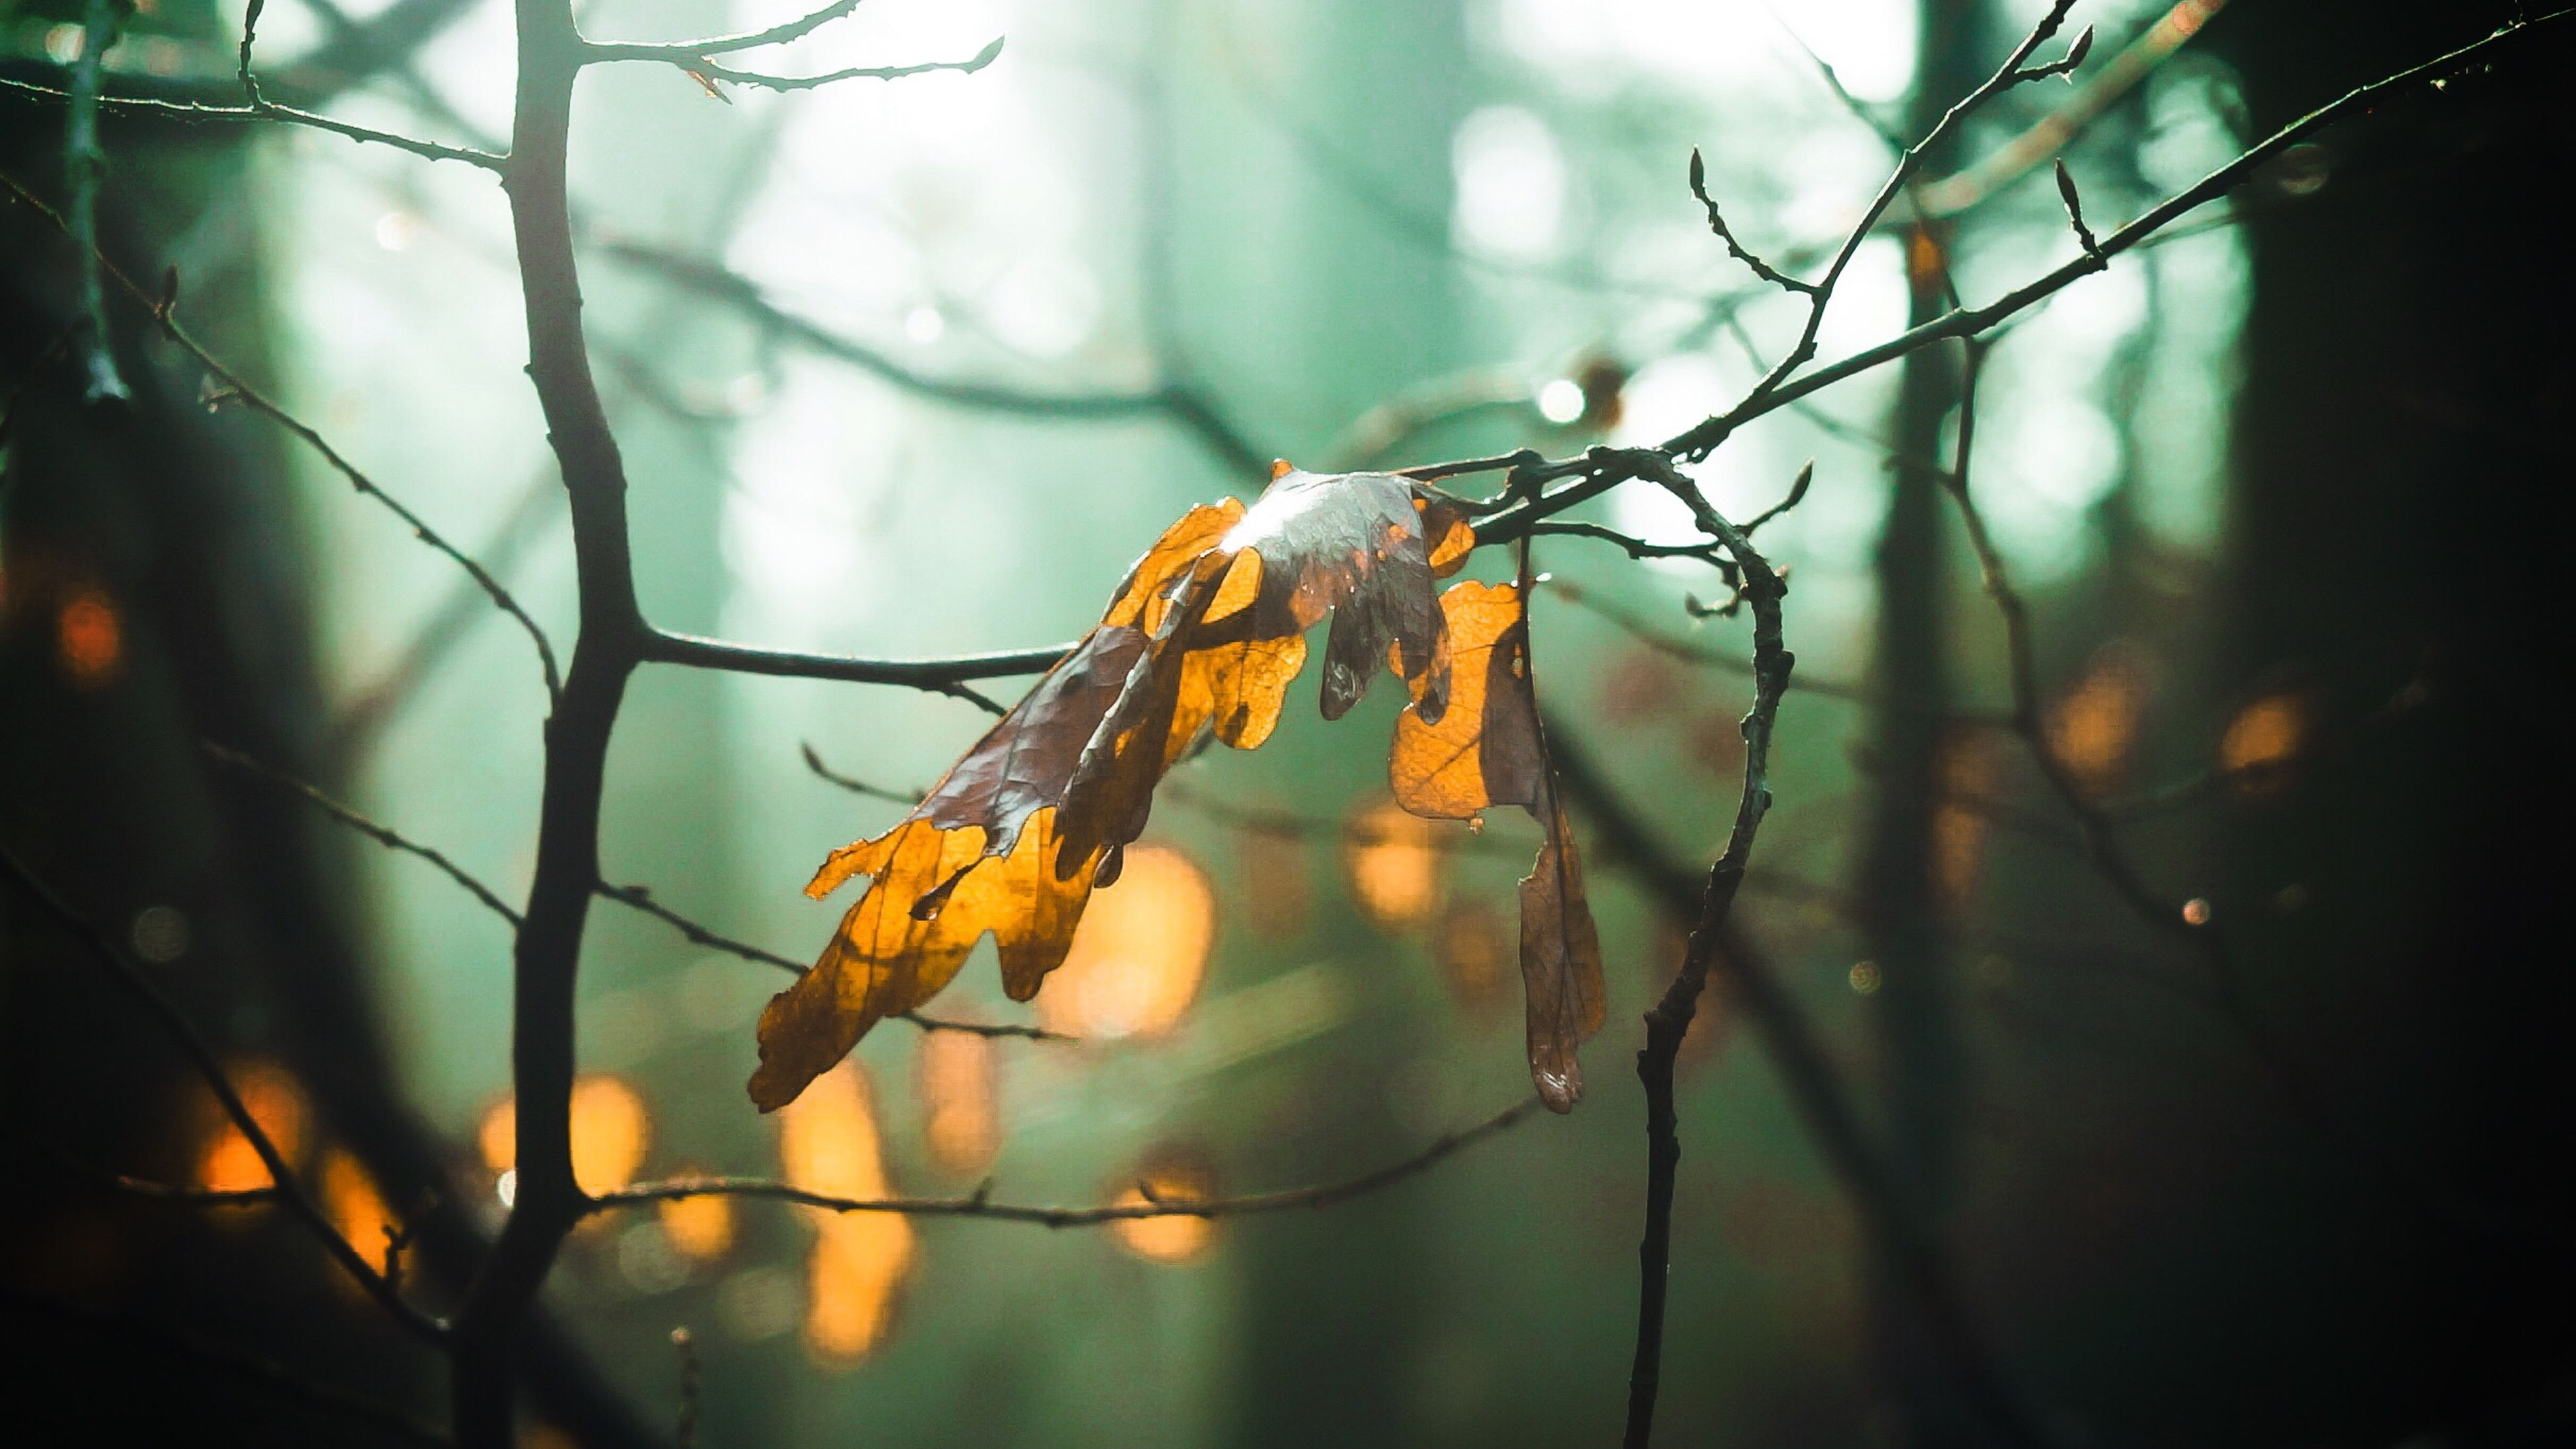 branch, focus on foreground, close-up, tree, twig, nature, forest, leaf, animal themes, one animal, plant, outdoors, selective focus, no people, animals in the wild, day, dry, perching, growth, sunlight